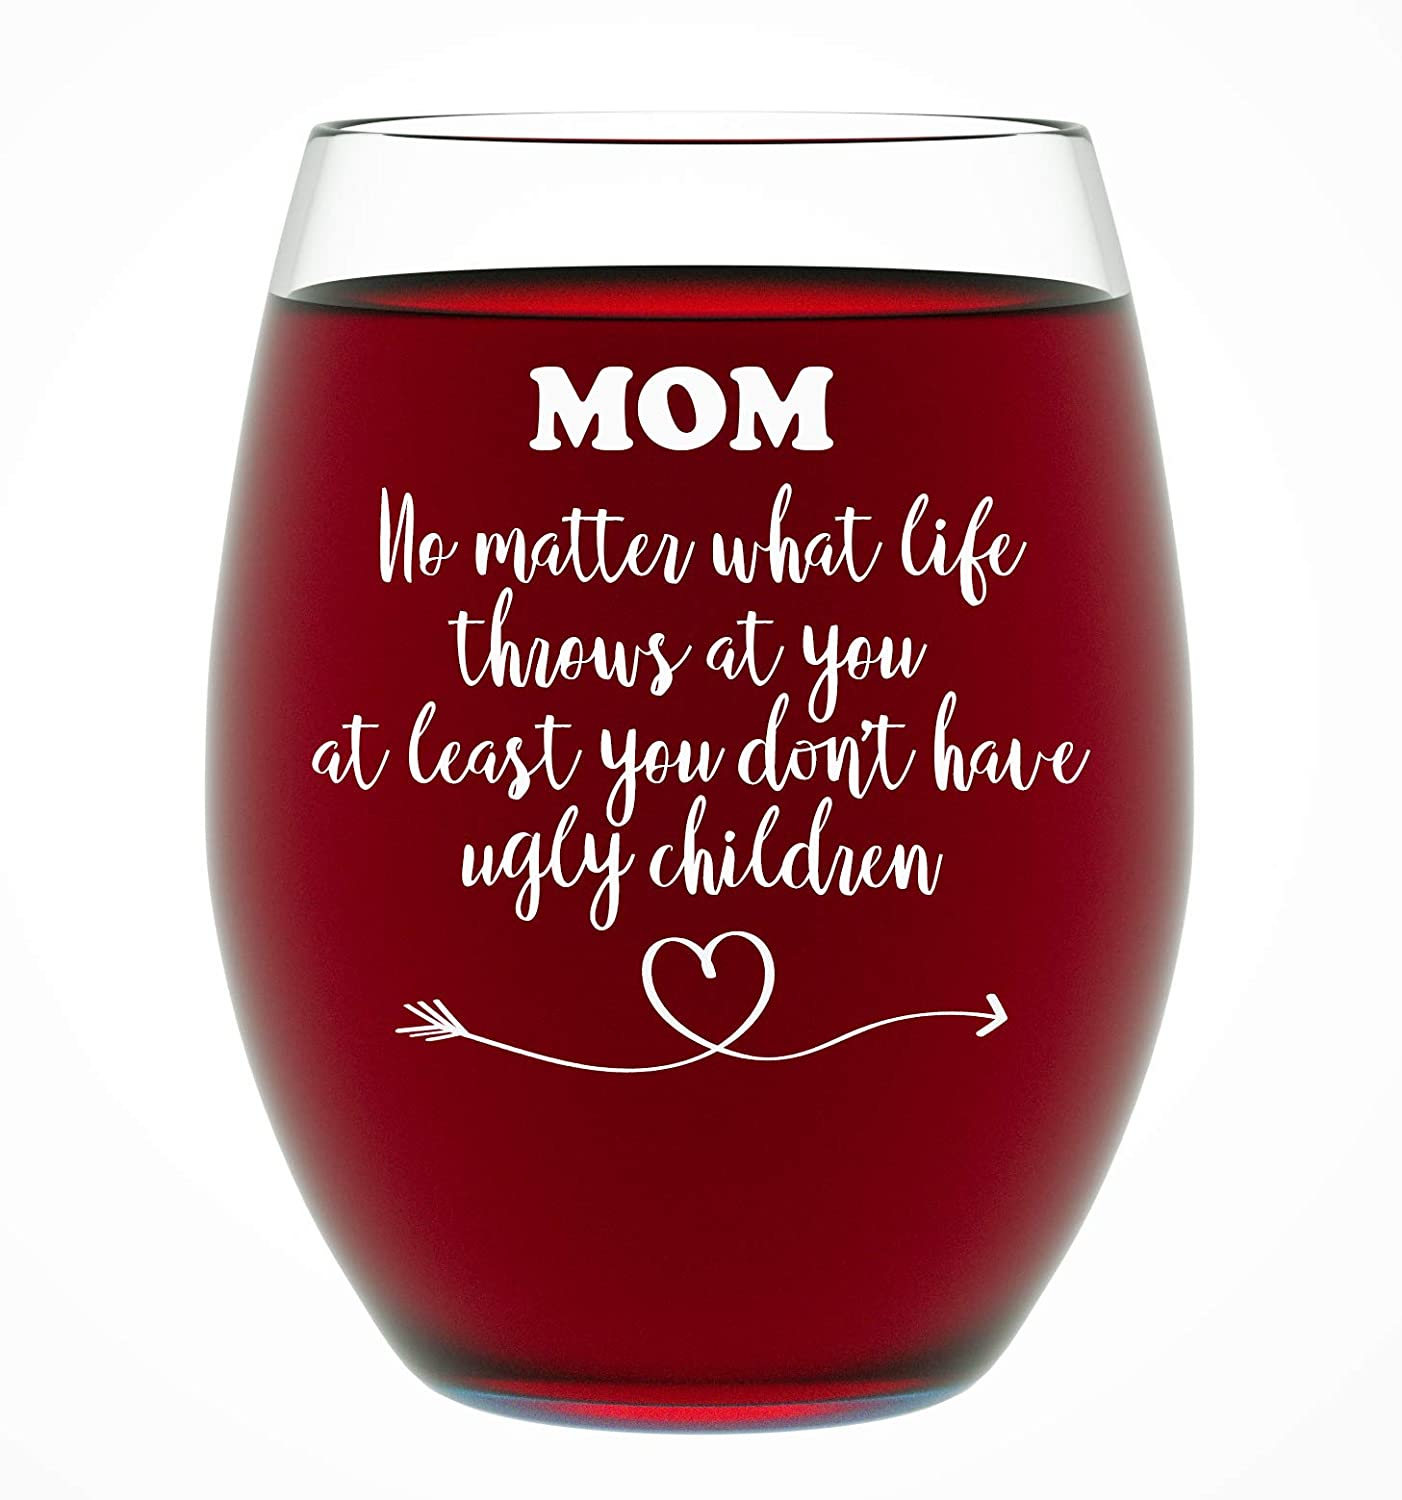 Gifts For Mom From Daughter Or Son Funny Unique Novelty Stemless Wine Glass Christmas Mothers Day Moms Birthday Just Because Shes The Best